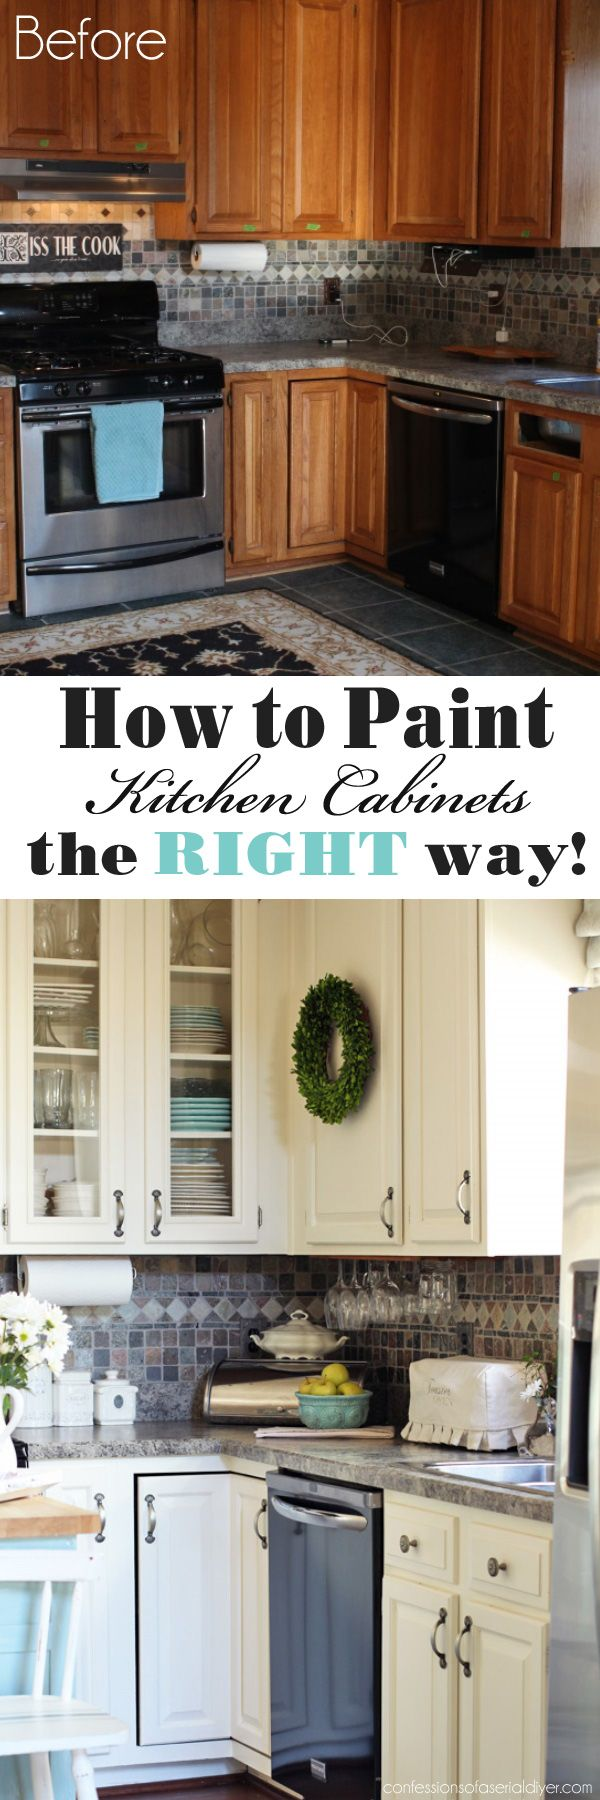 redoing kitchen cabinets How to Paint Kitchen Cabinets the RIGHT way from Confessions of a Serial Do it